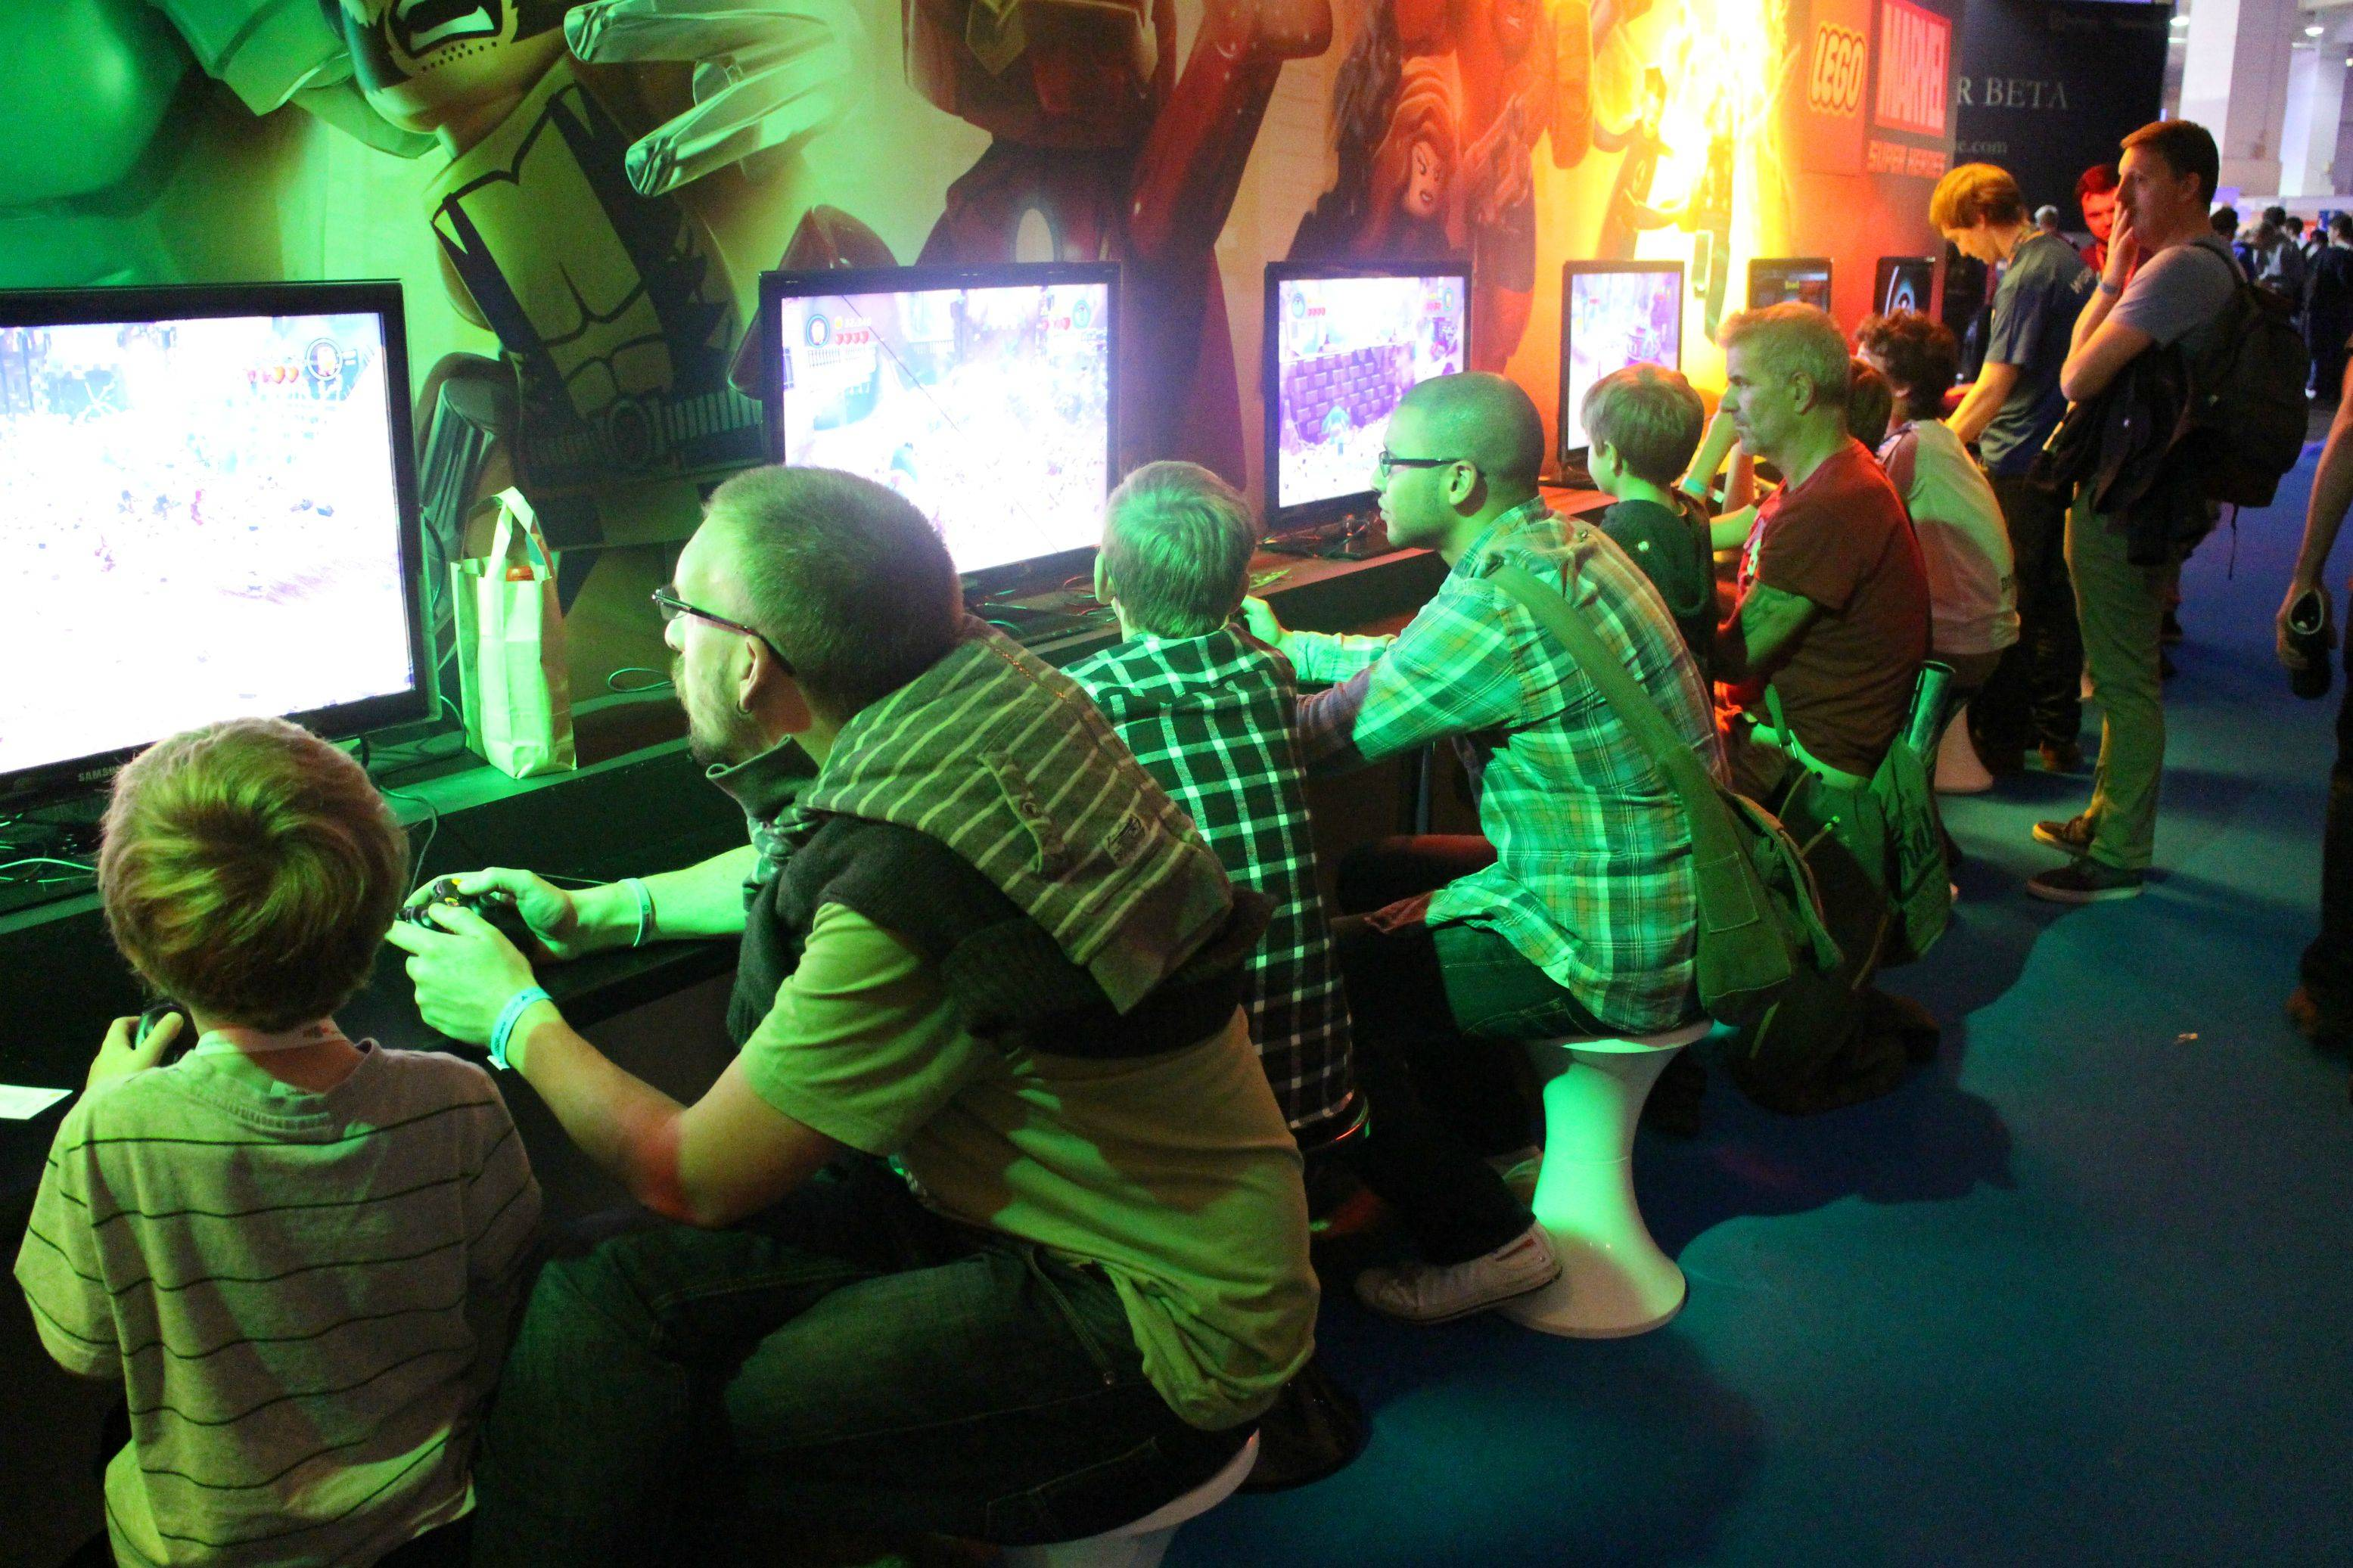 More Playable Games at UK's Largest Ever Video Games Event – EGX 2015 Tickets On Sale Now